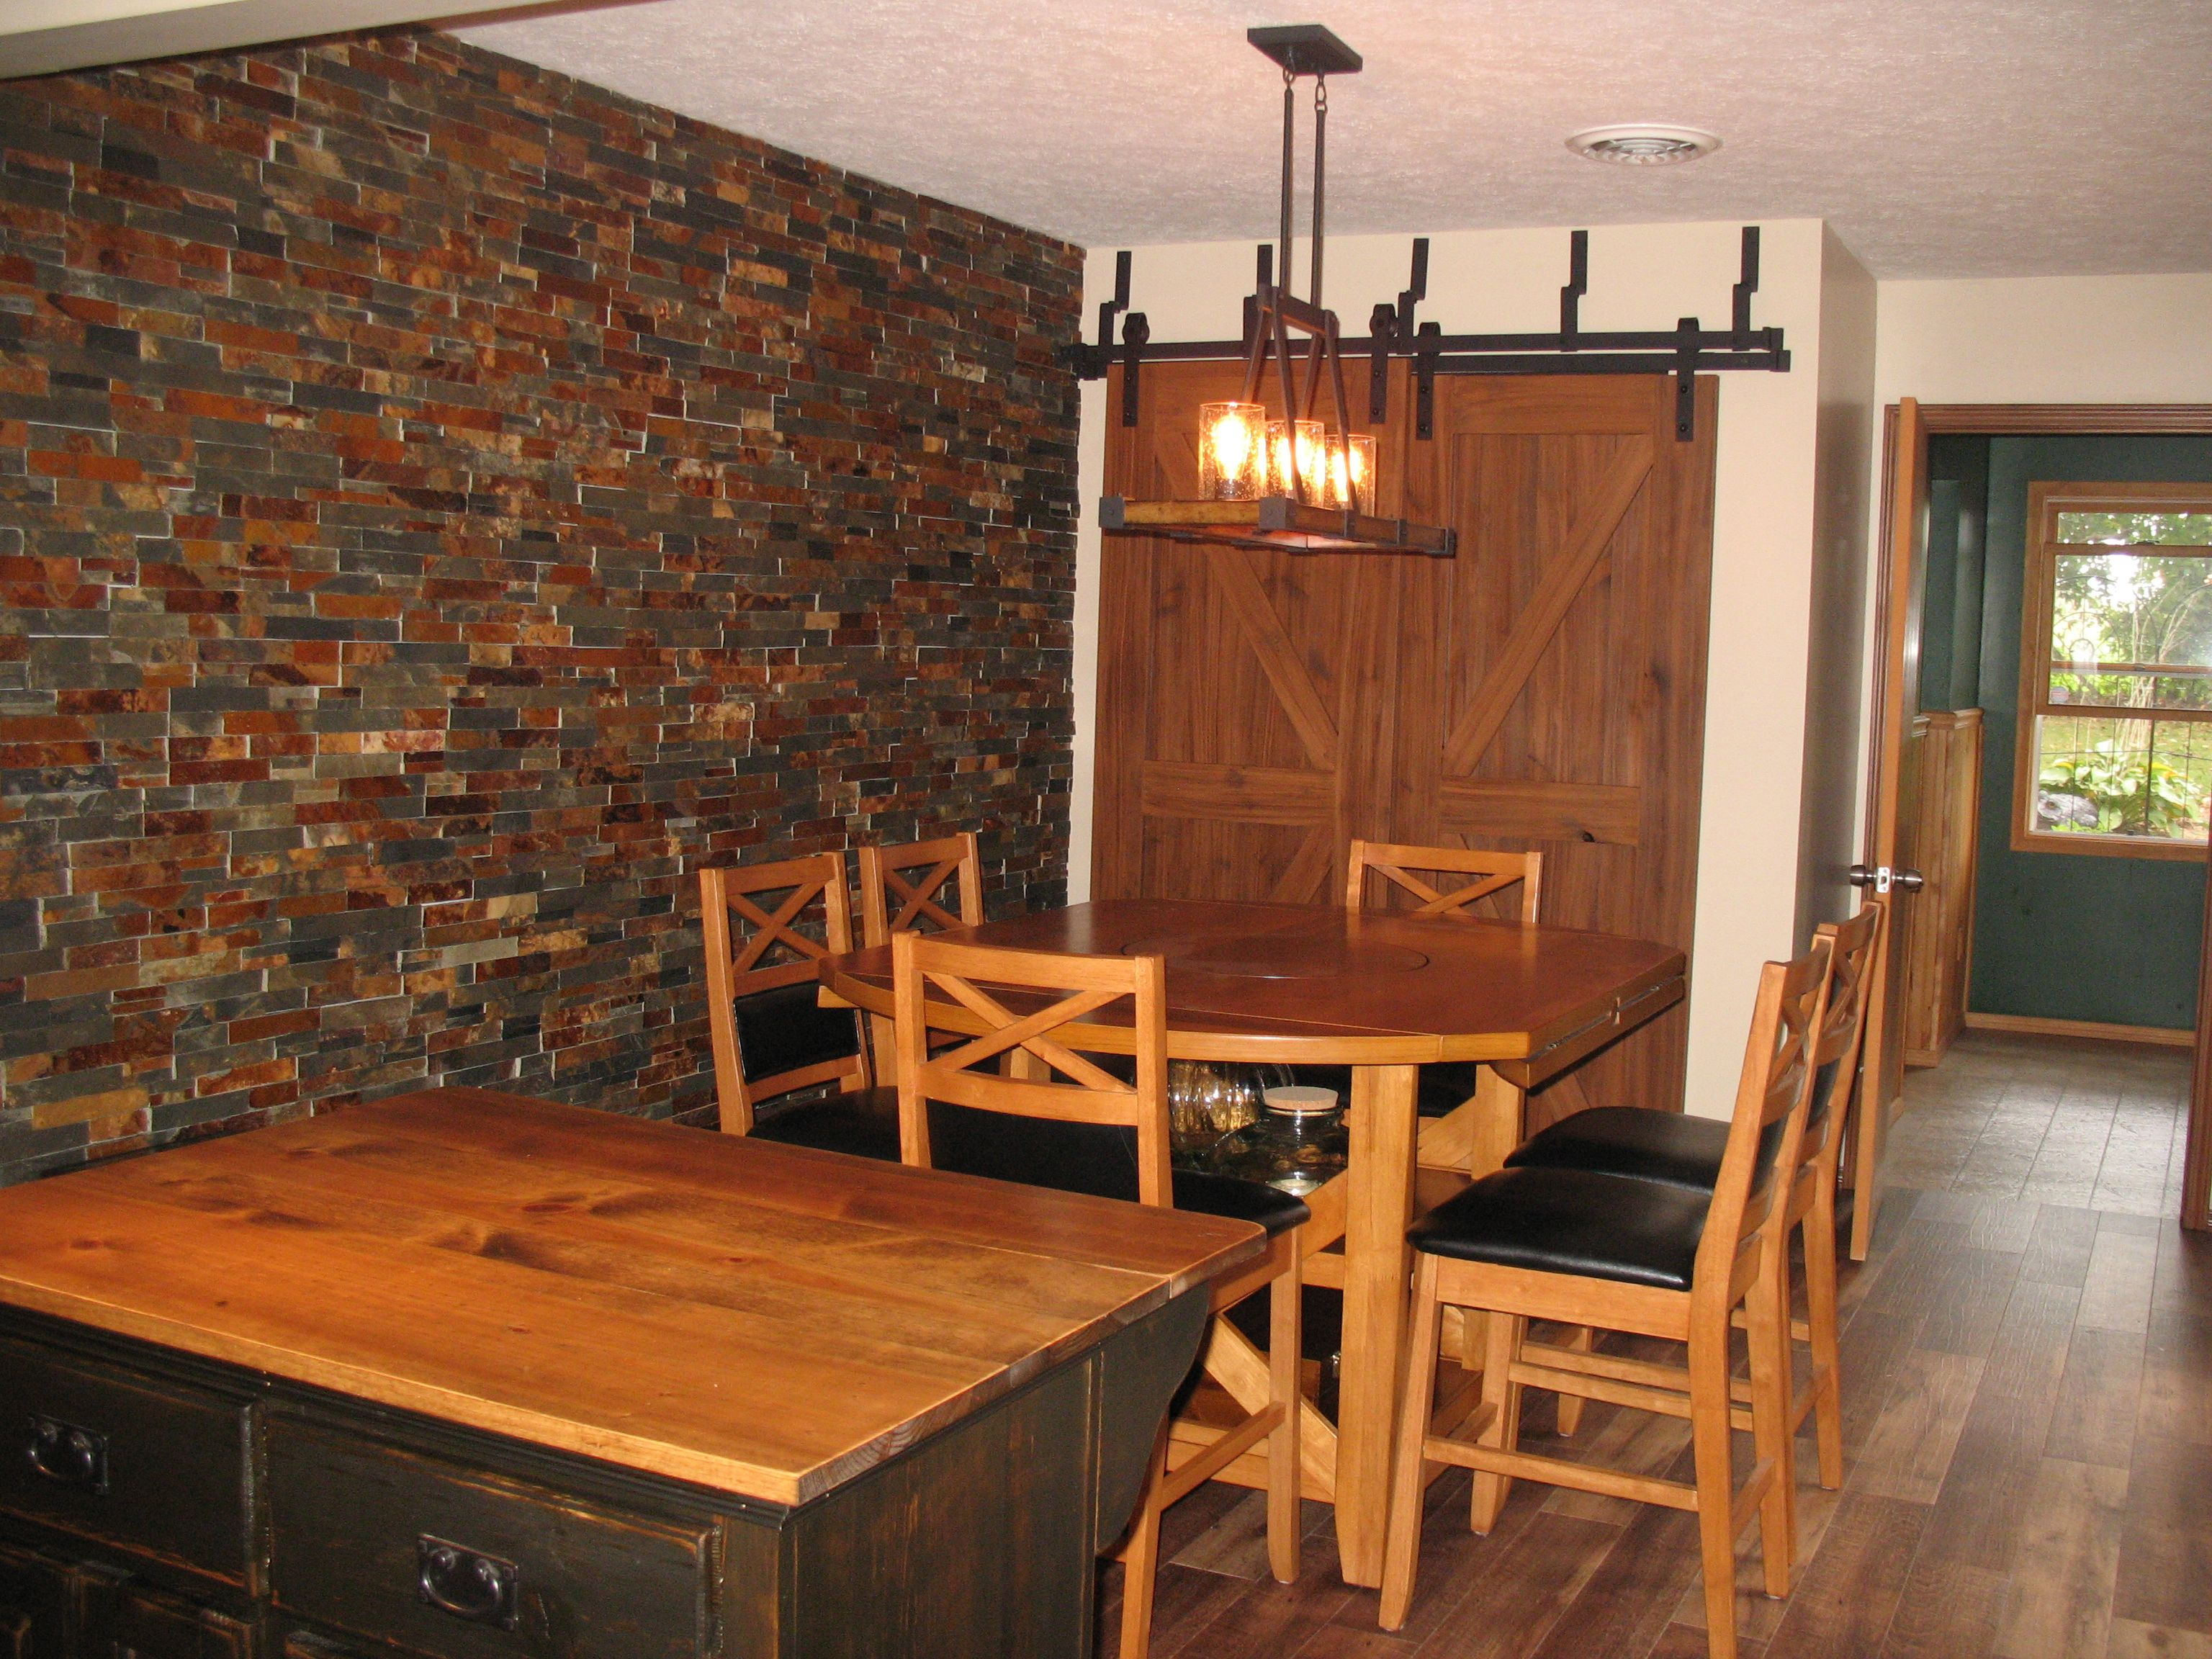 Dining Room Remodel Fair Our Dining Room Remodel With Stacked Stone Feature Wall And Home 2018